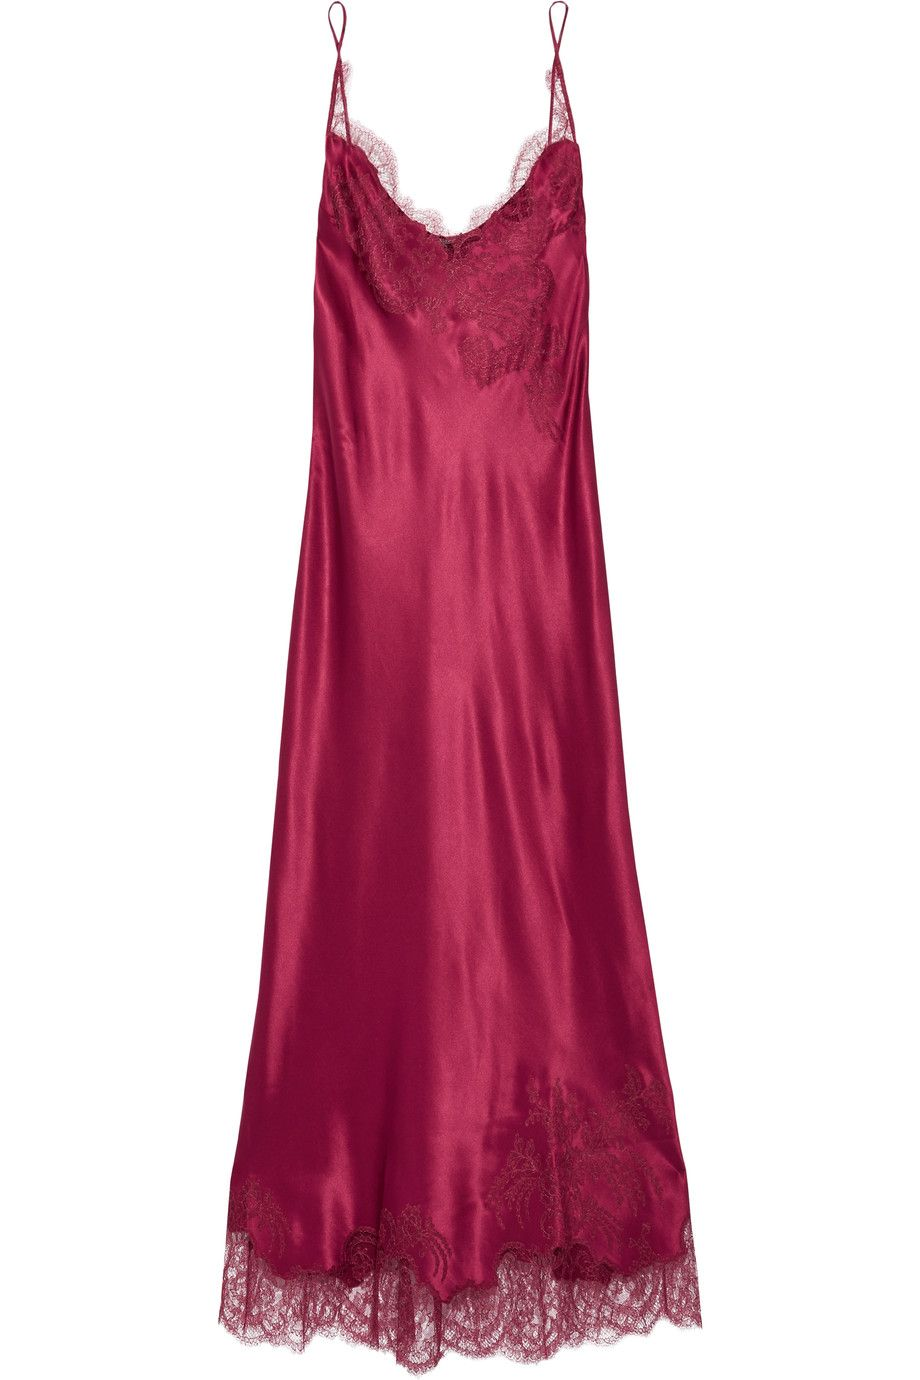 """Carine Gilson is inspired by """"Alice in a dreamlike quest"""" for Fall '16. This nightdress has been handcrafted in the label's Brussels atelier using the designer's favorite fabrics - lustrous silk-satin and delicate lace. We especially love the rich burgundy hue."""